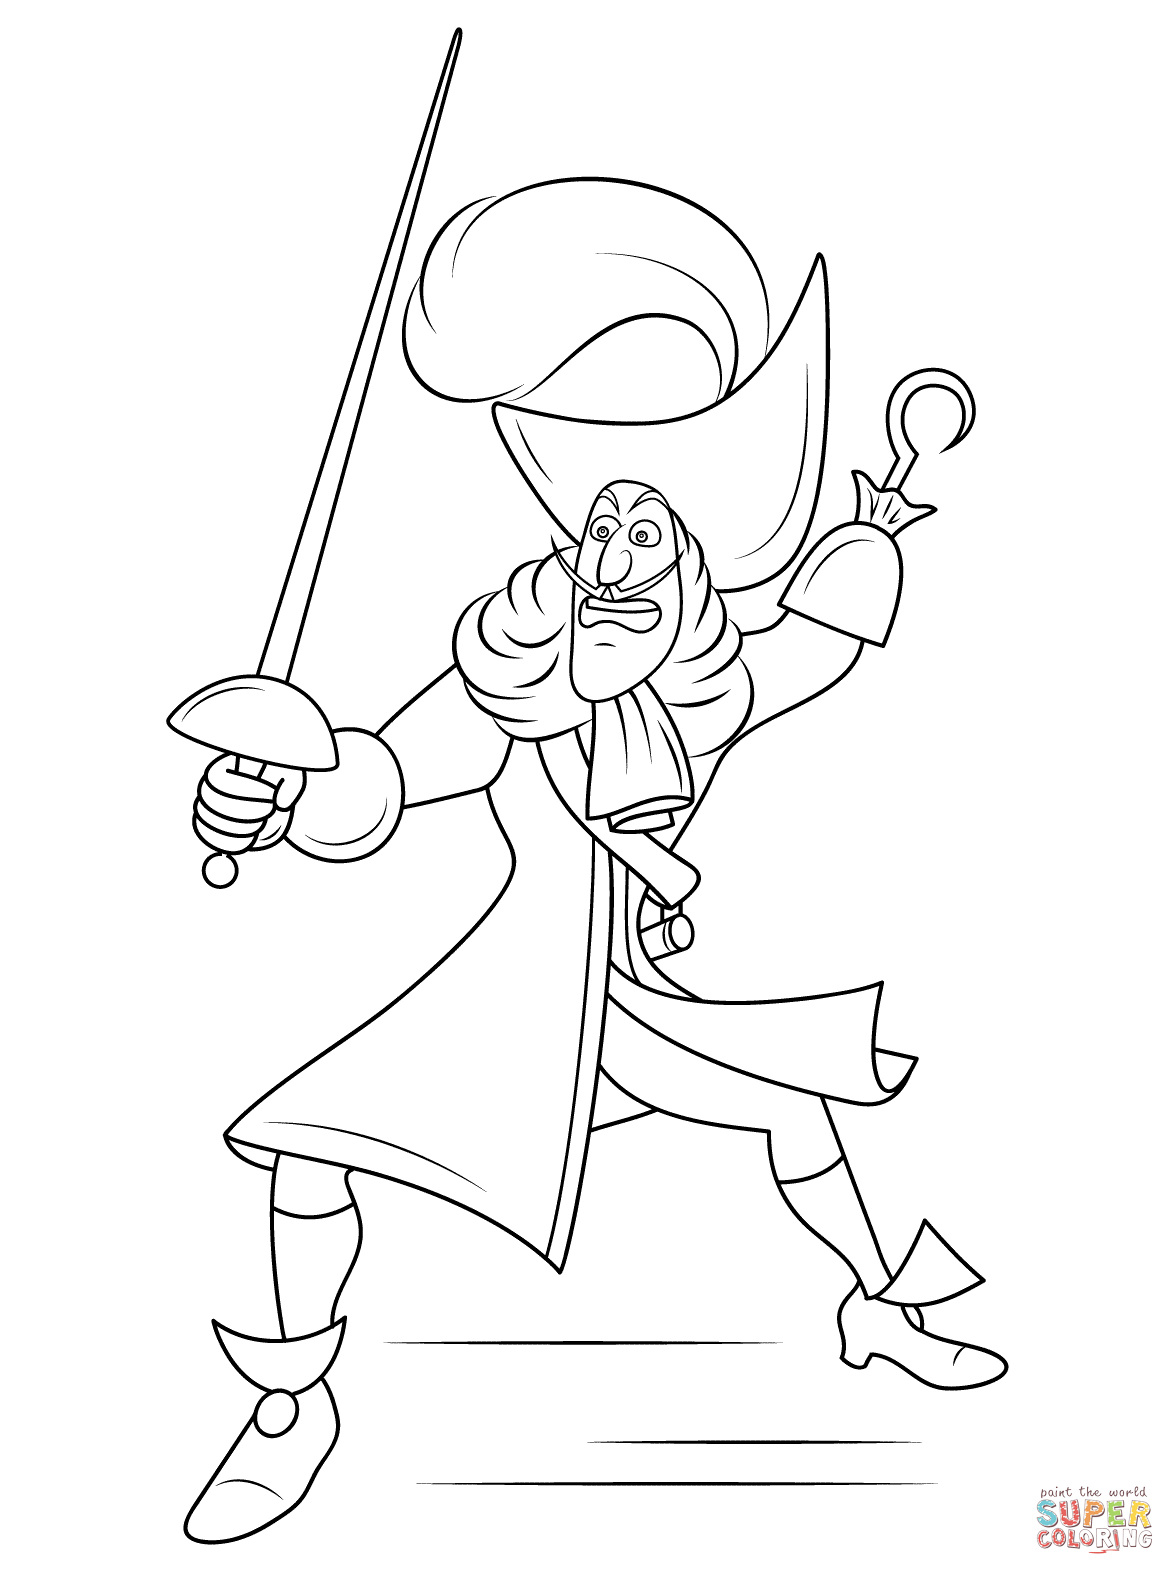 Captain hook coloring pages to download and print for free